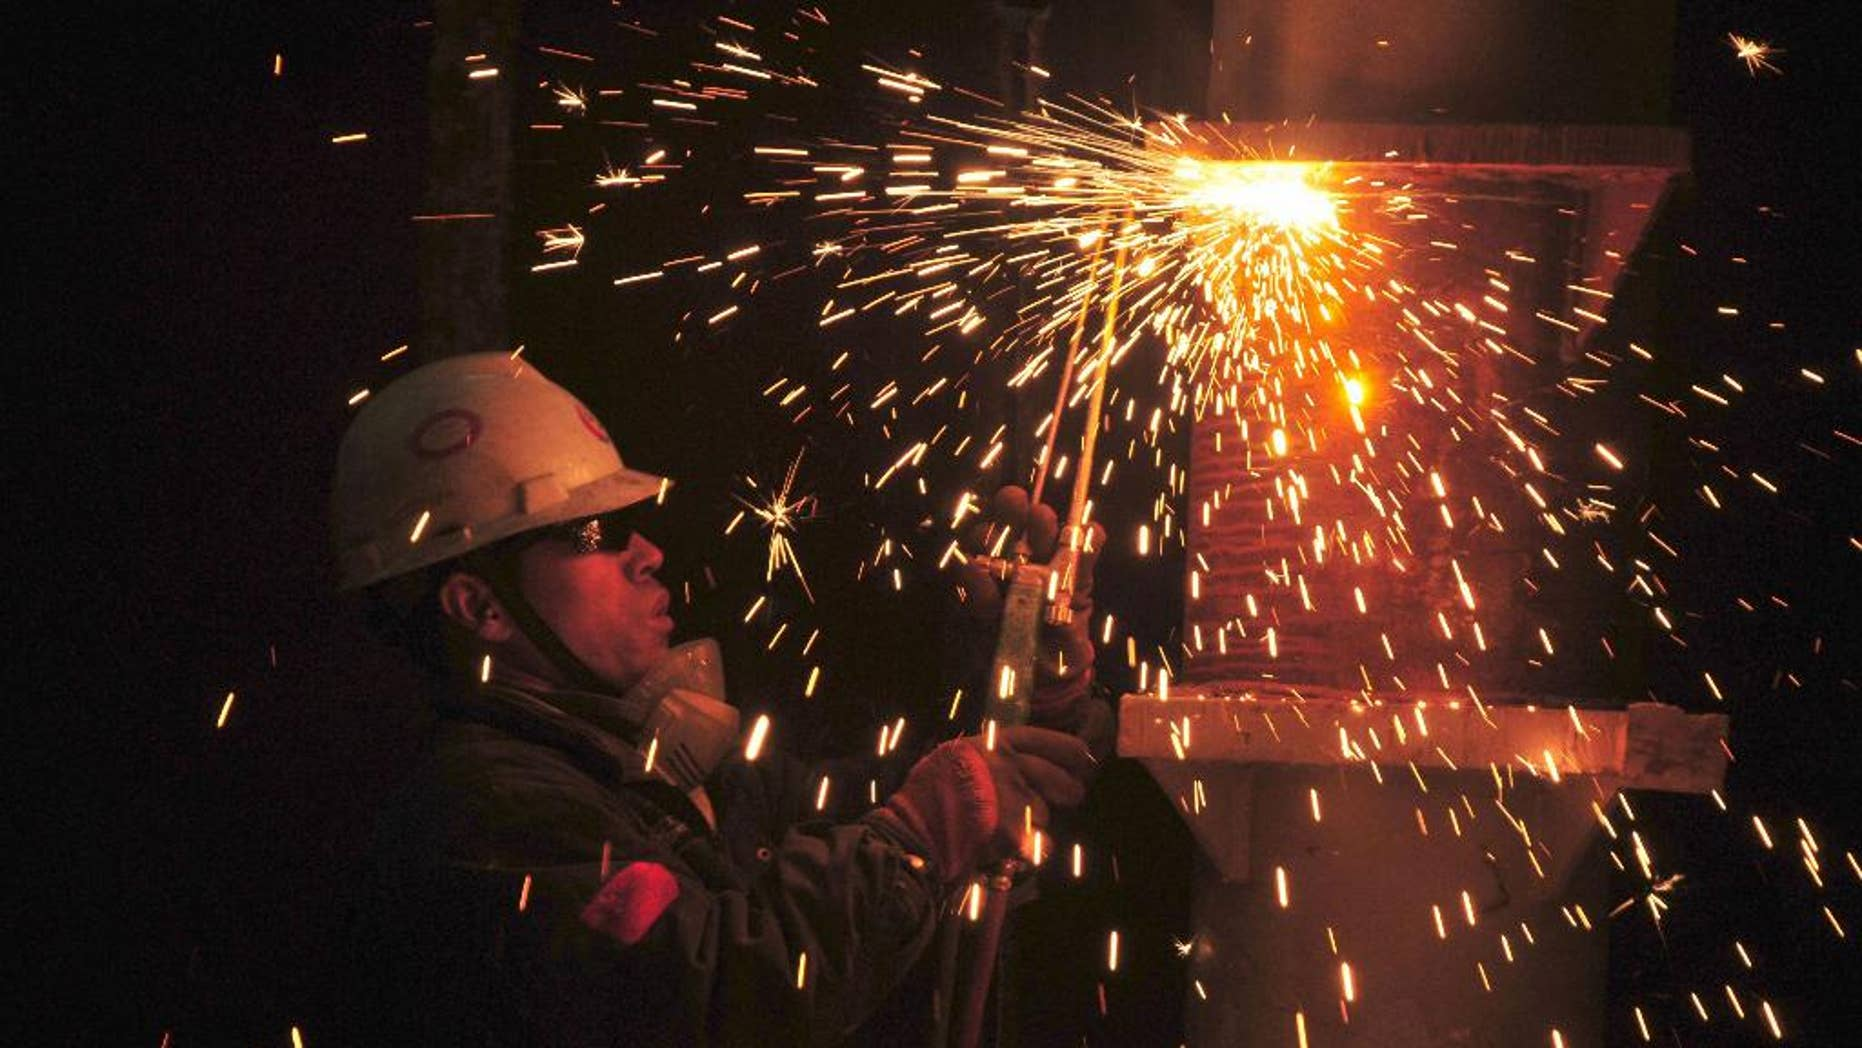 Sparks fly as a welder works in a subsidiary of China Offshore Oil Engineering Co. Ltd. in Qingdao in eastern China's Shandong province Friday, March 31, 2017.  China's factory activity has ticked up again February, 2017, to its highest level in nearly five years, in a fresh sign the world's No. 2 economy is picking up steam. The official purchasing managers' index released Friday climbed to 51.8 in March from 51.6 in the previous month.(Chinatopix via AP)